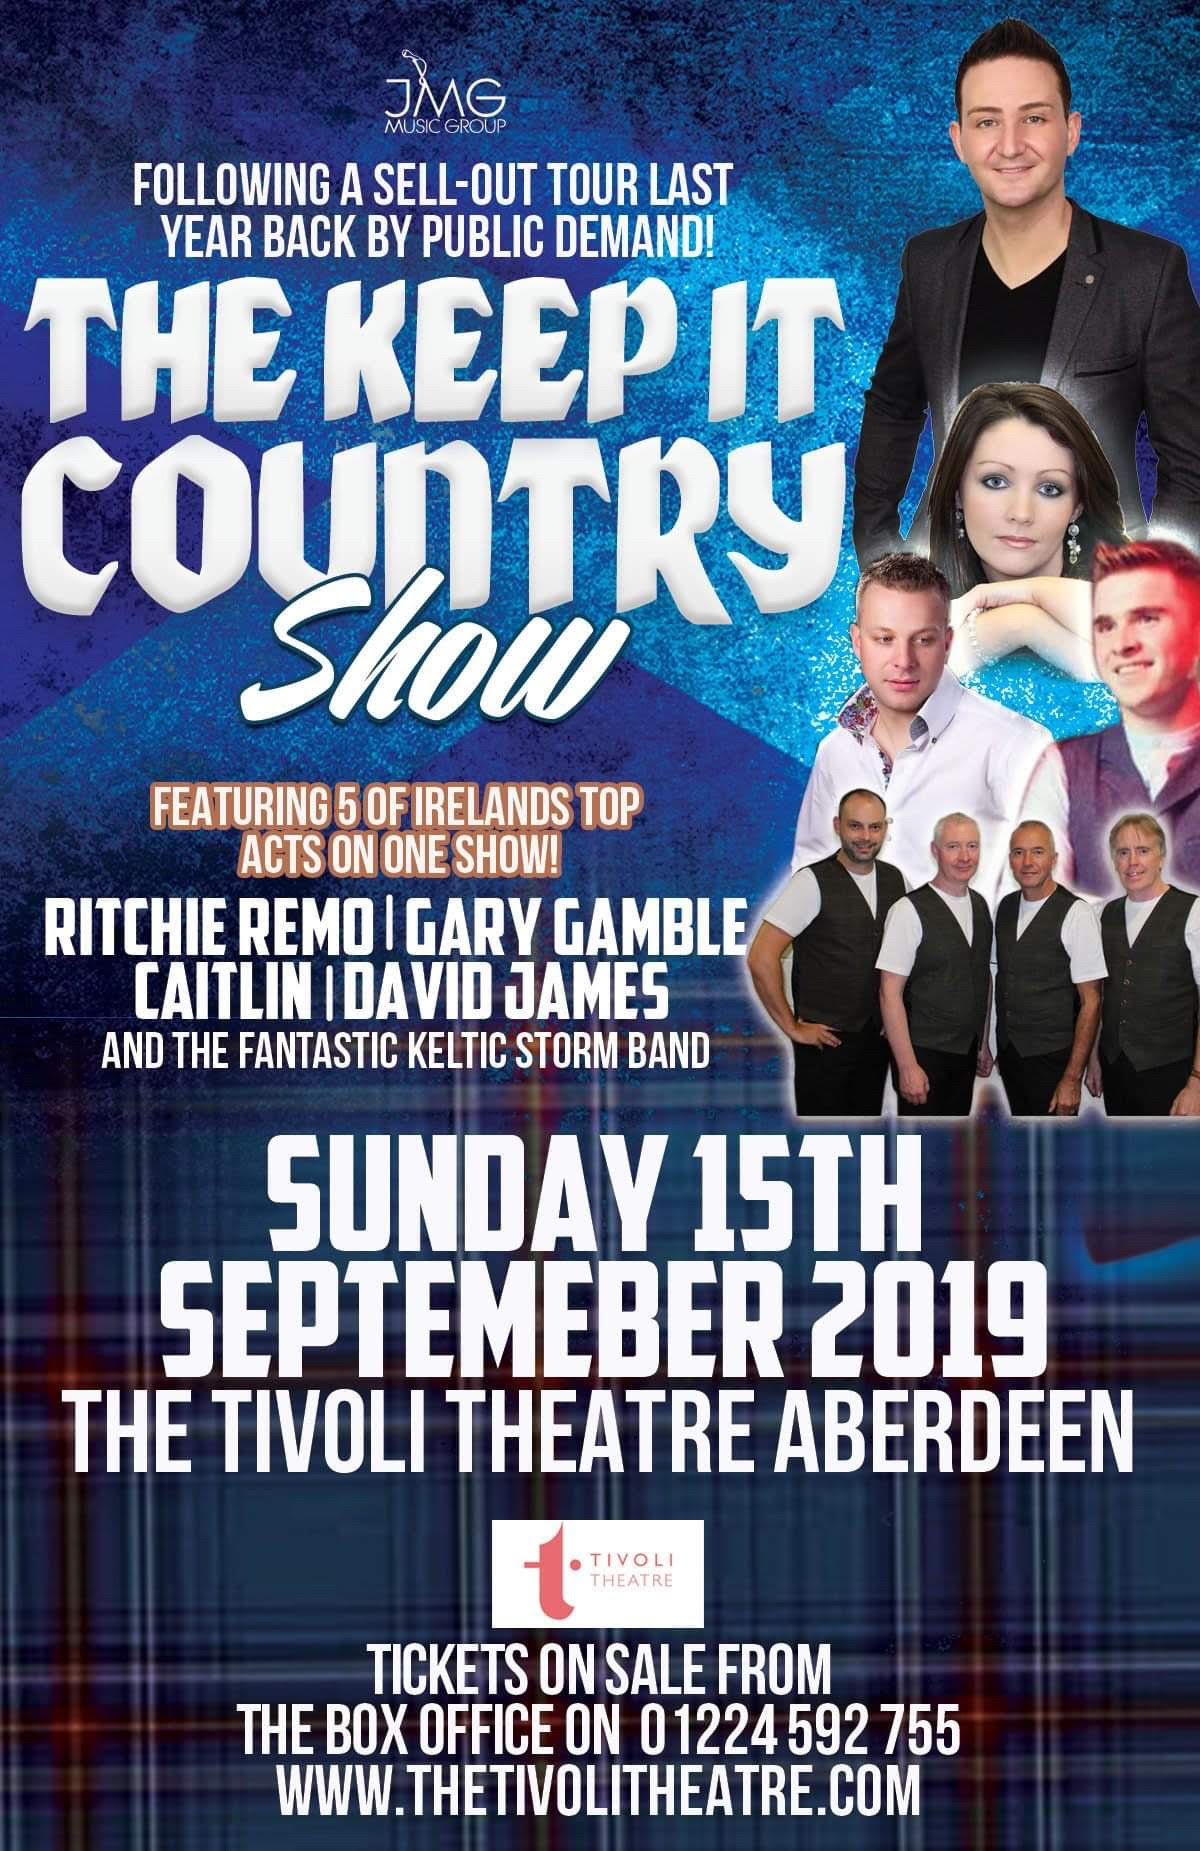 The Keep It Country Show The Tivoli Theatre